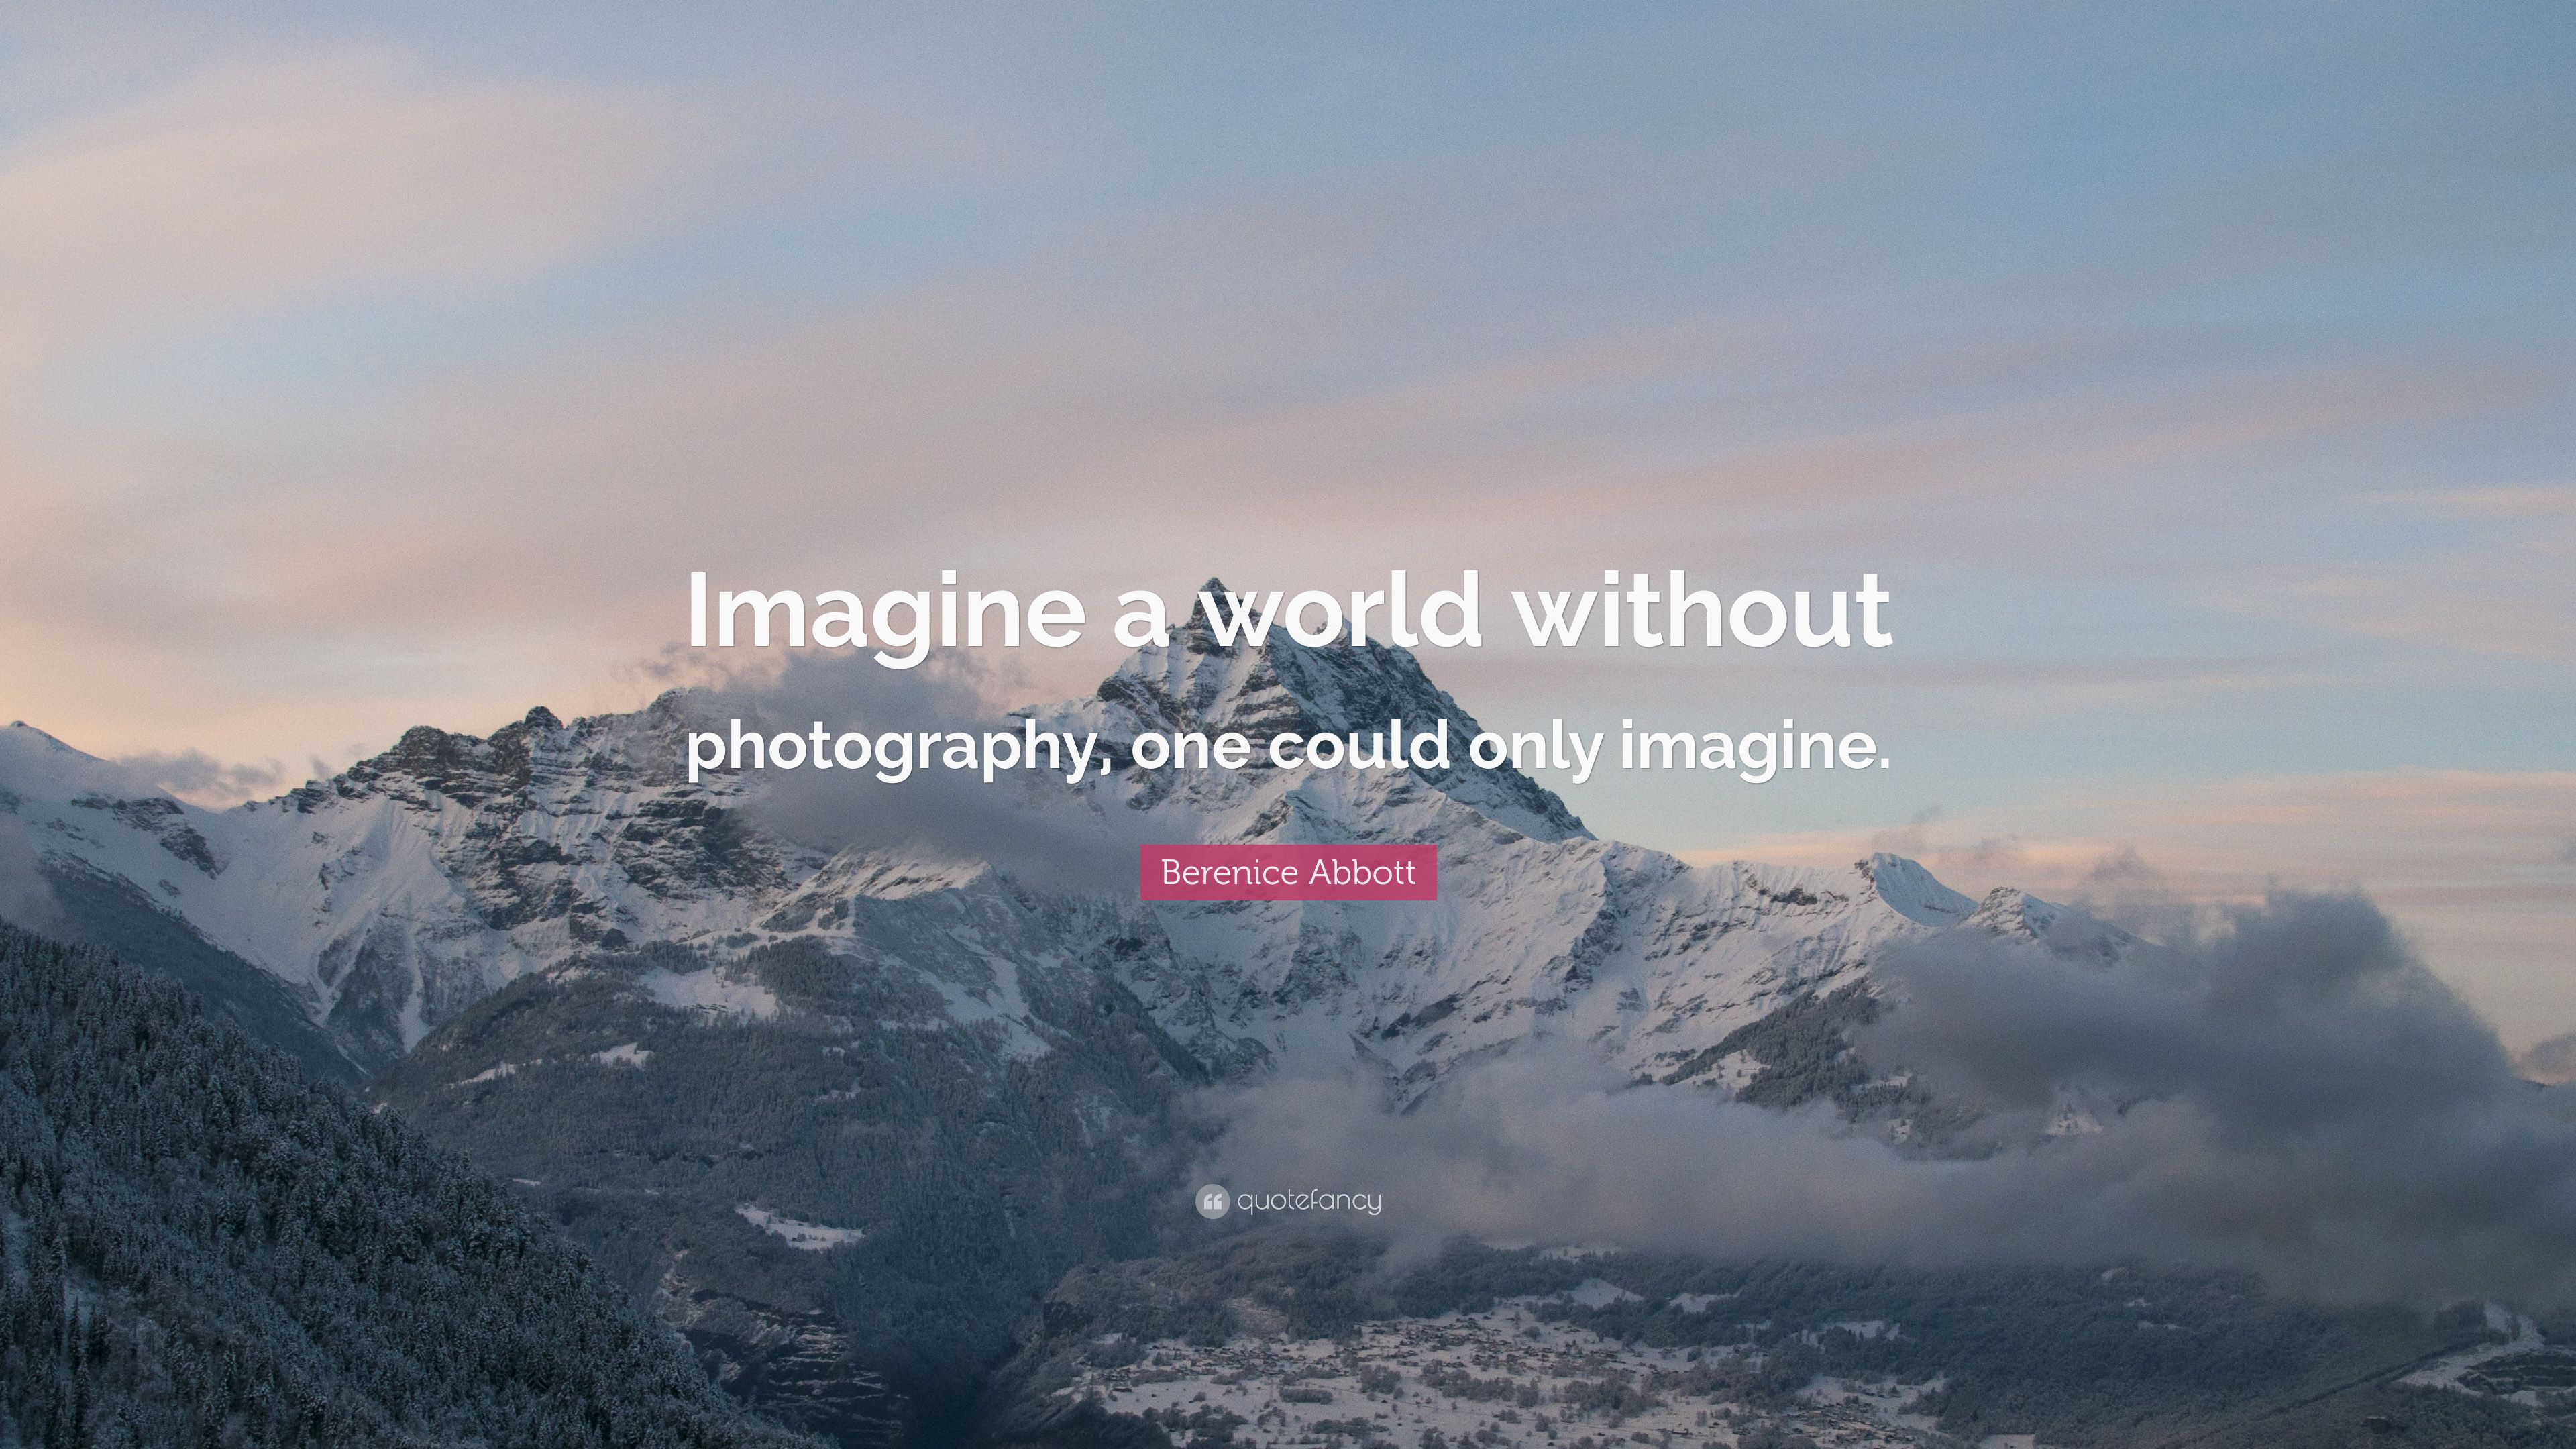 The world without photography